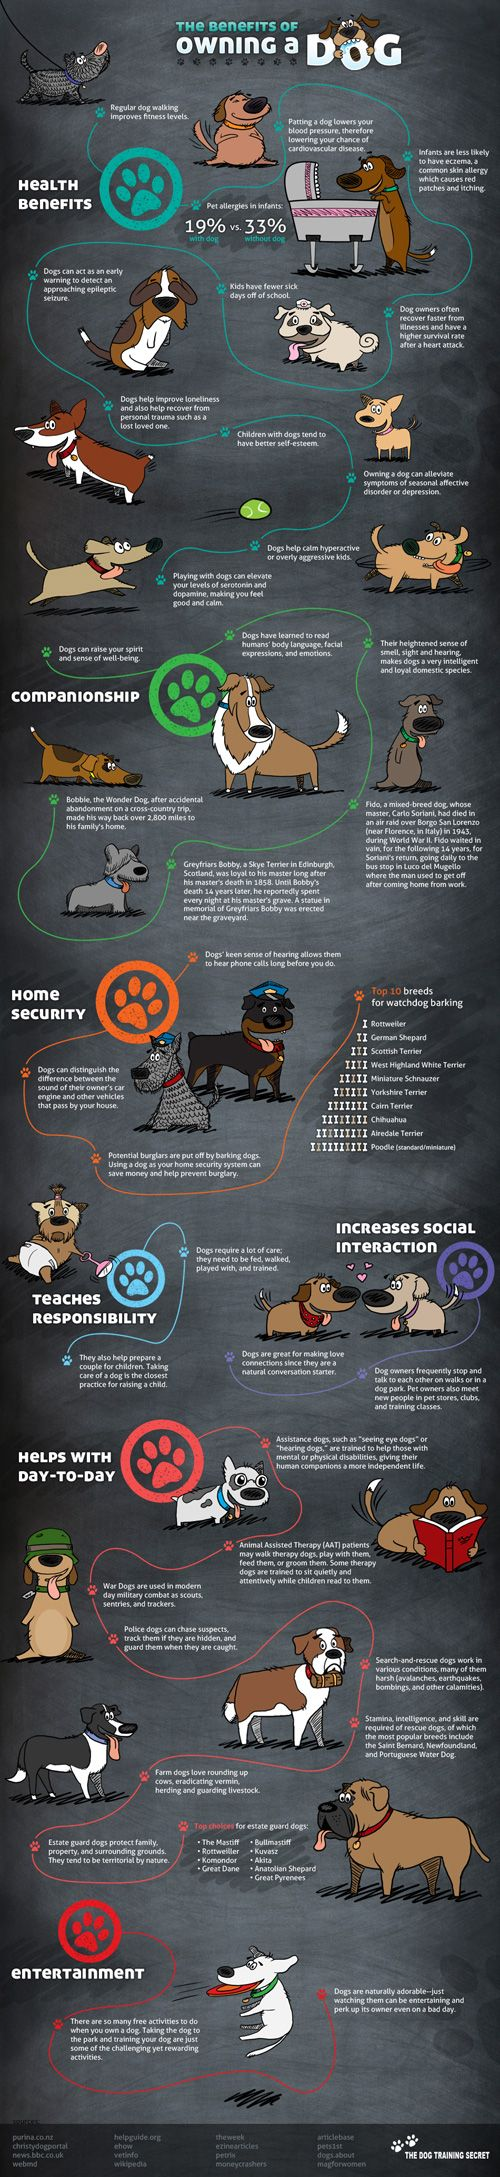 Owning a dog (or another pet) is good for you! This infographic provides some great reasoning if you are thinking about getting one.